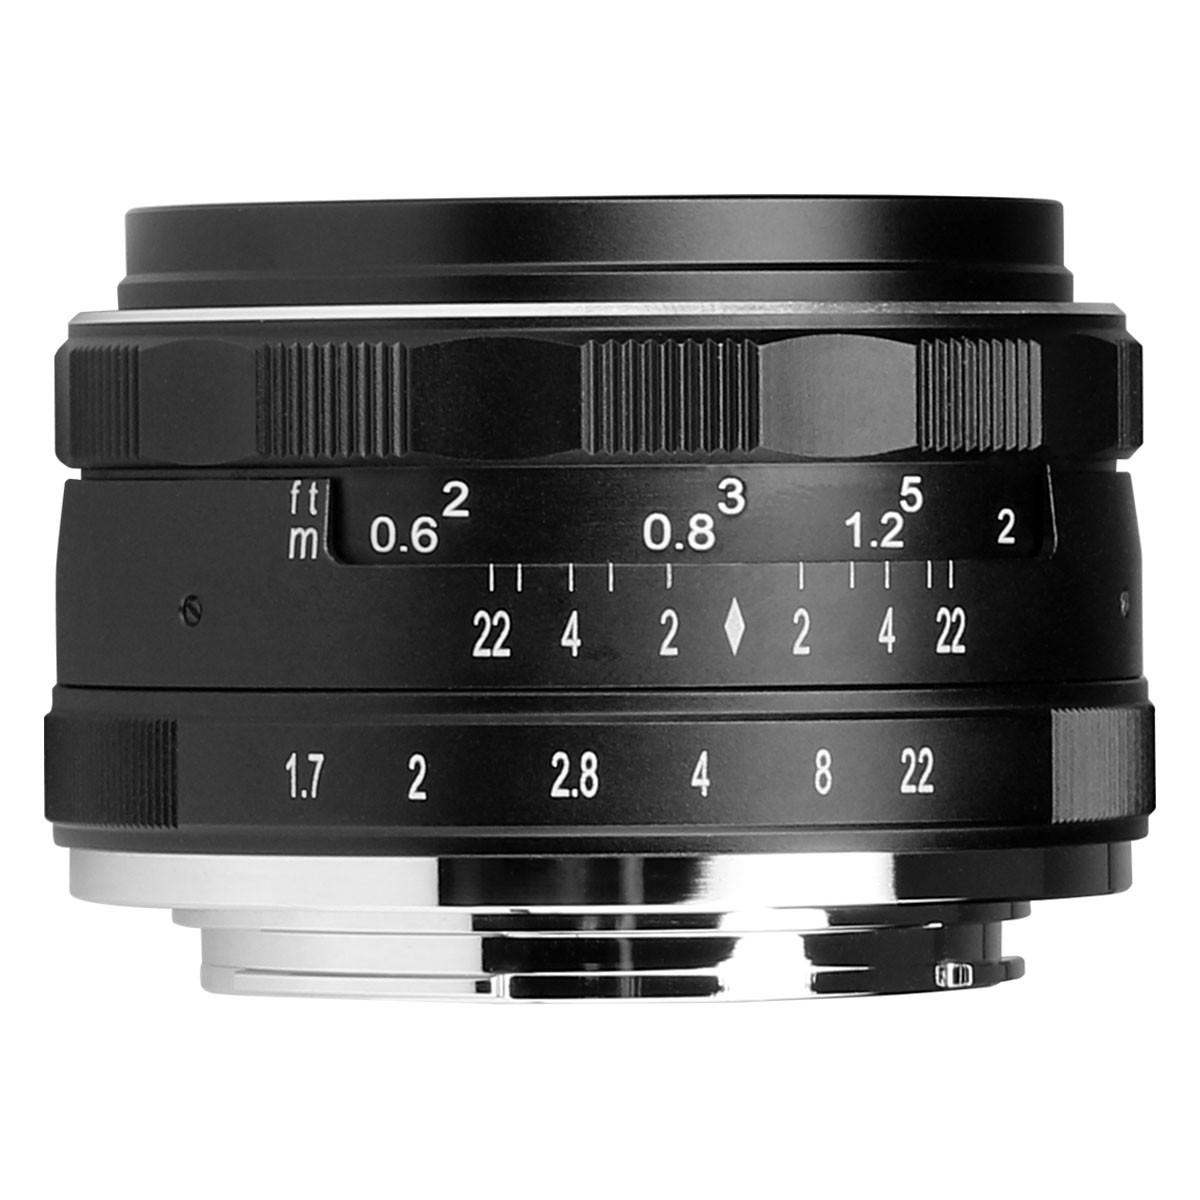 Meike 35mm APS-C F1.7 Manual Focus Lensa For Sony - FREE Kenko Pro1 UV